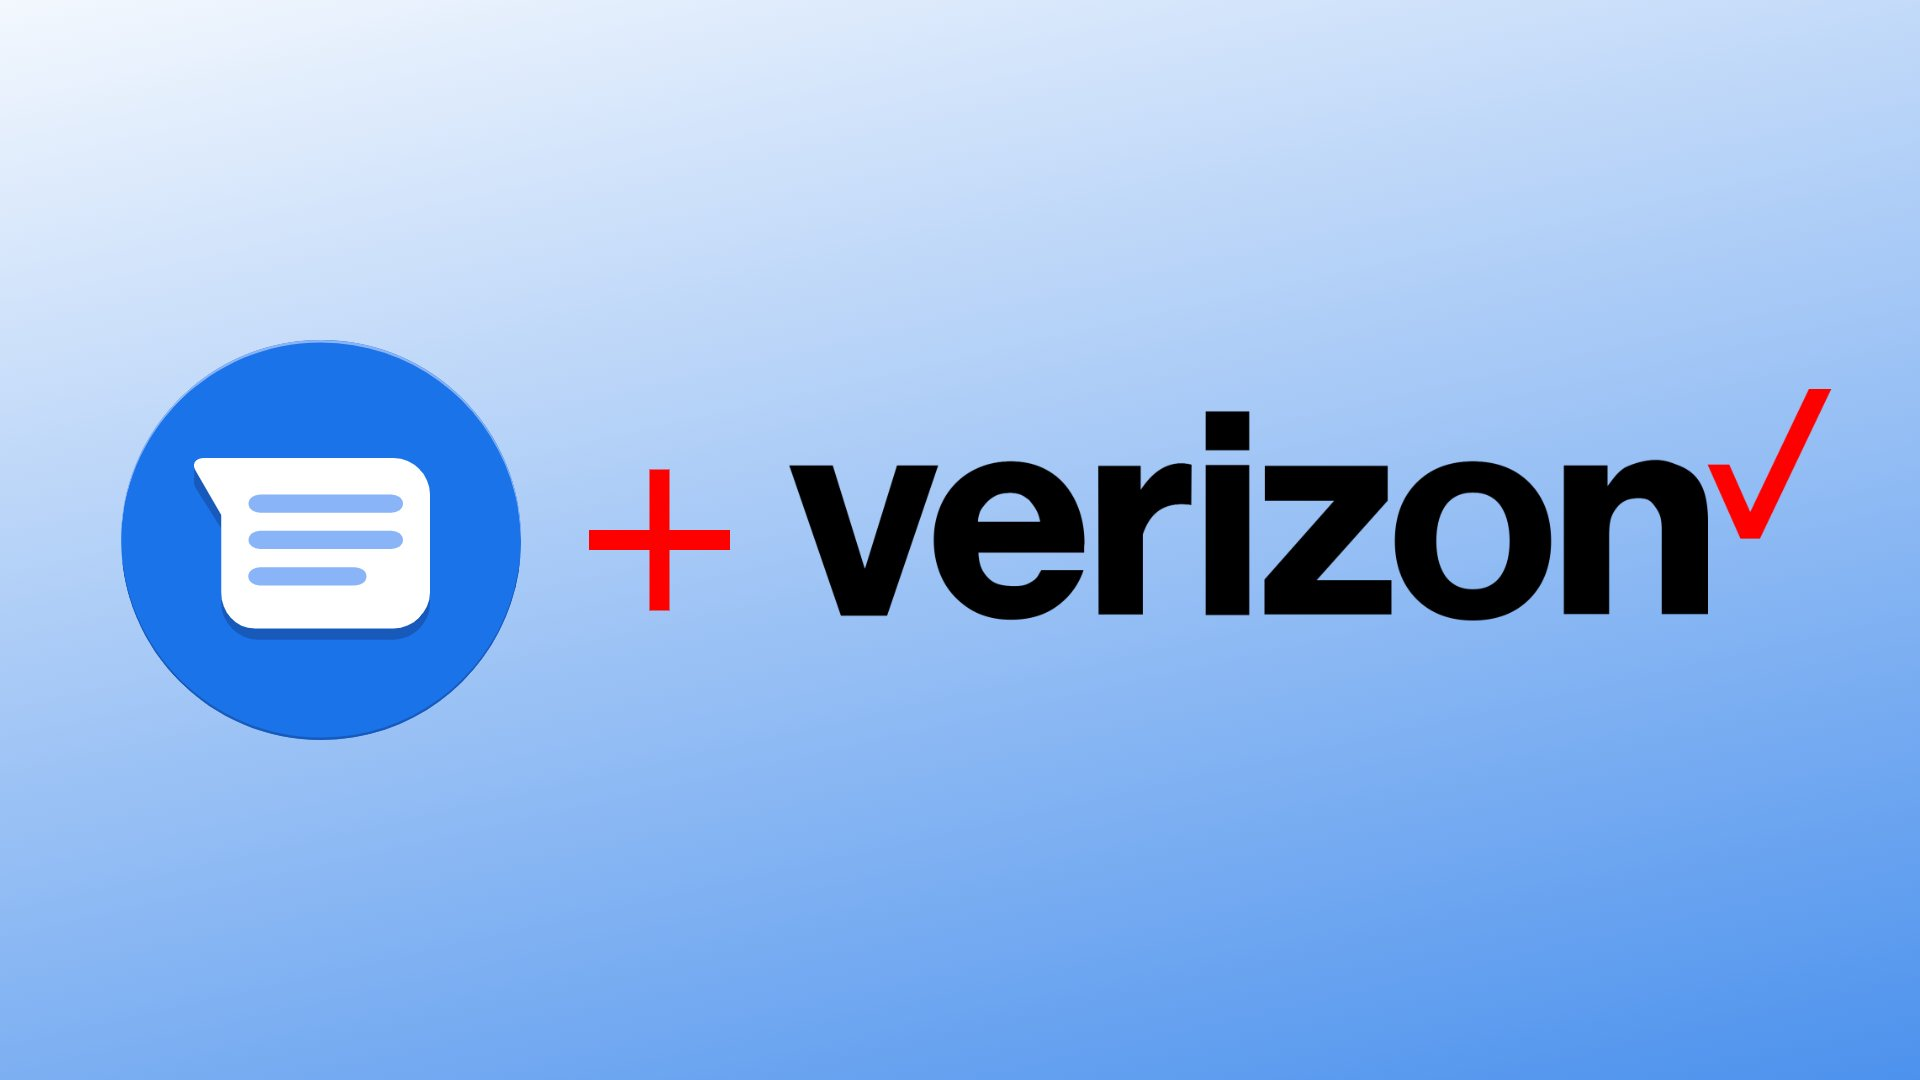 Verizon to adopt Google Messages as default while we wait on Apple to make a move